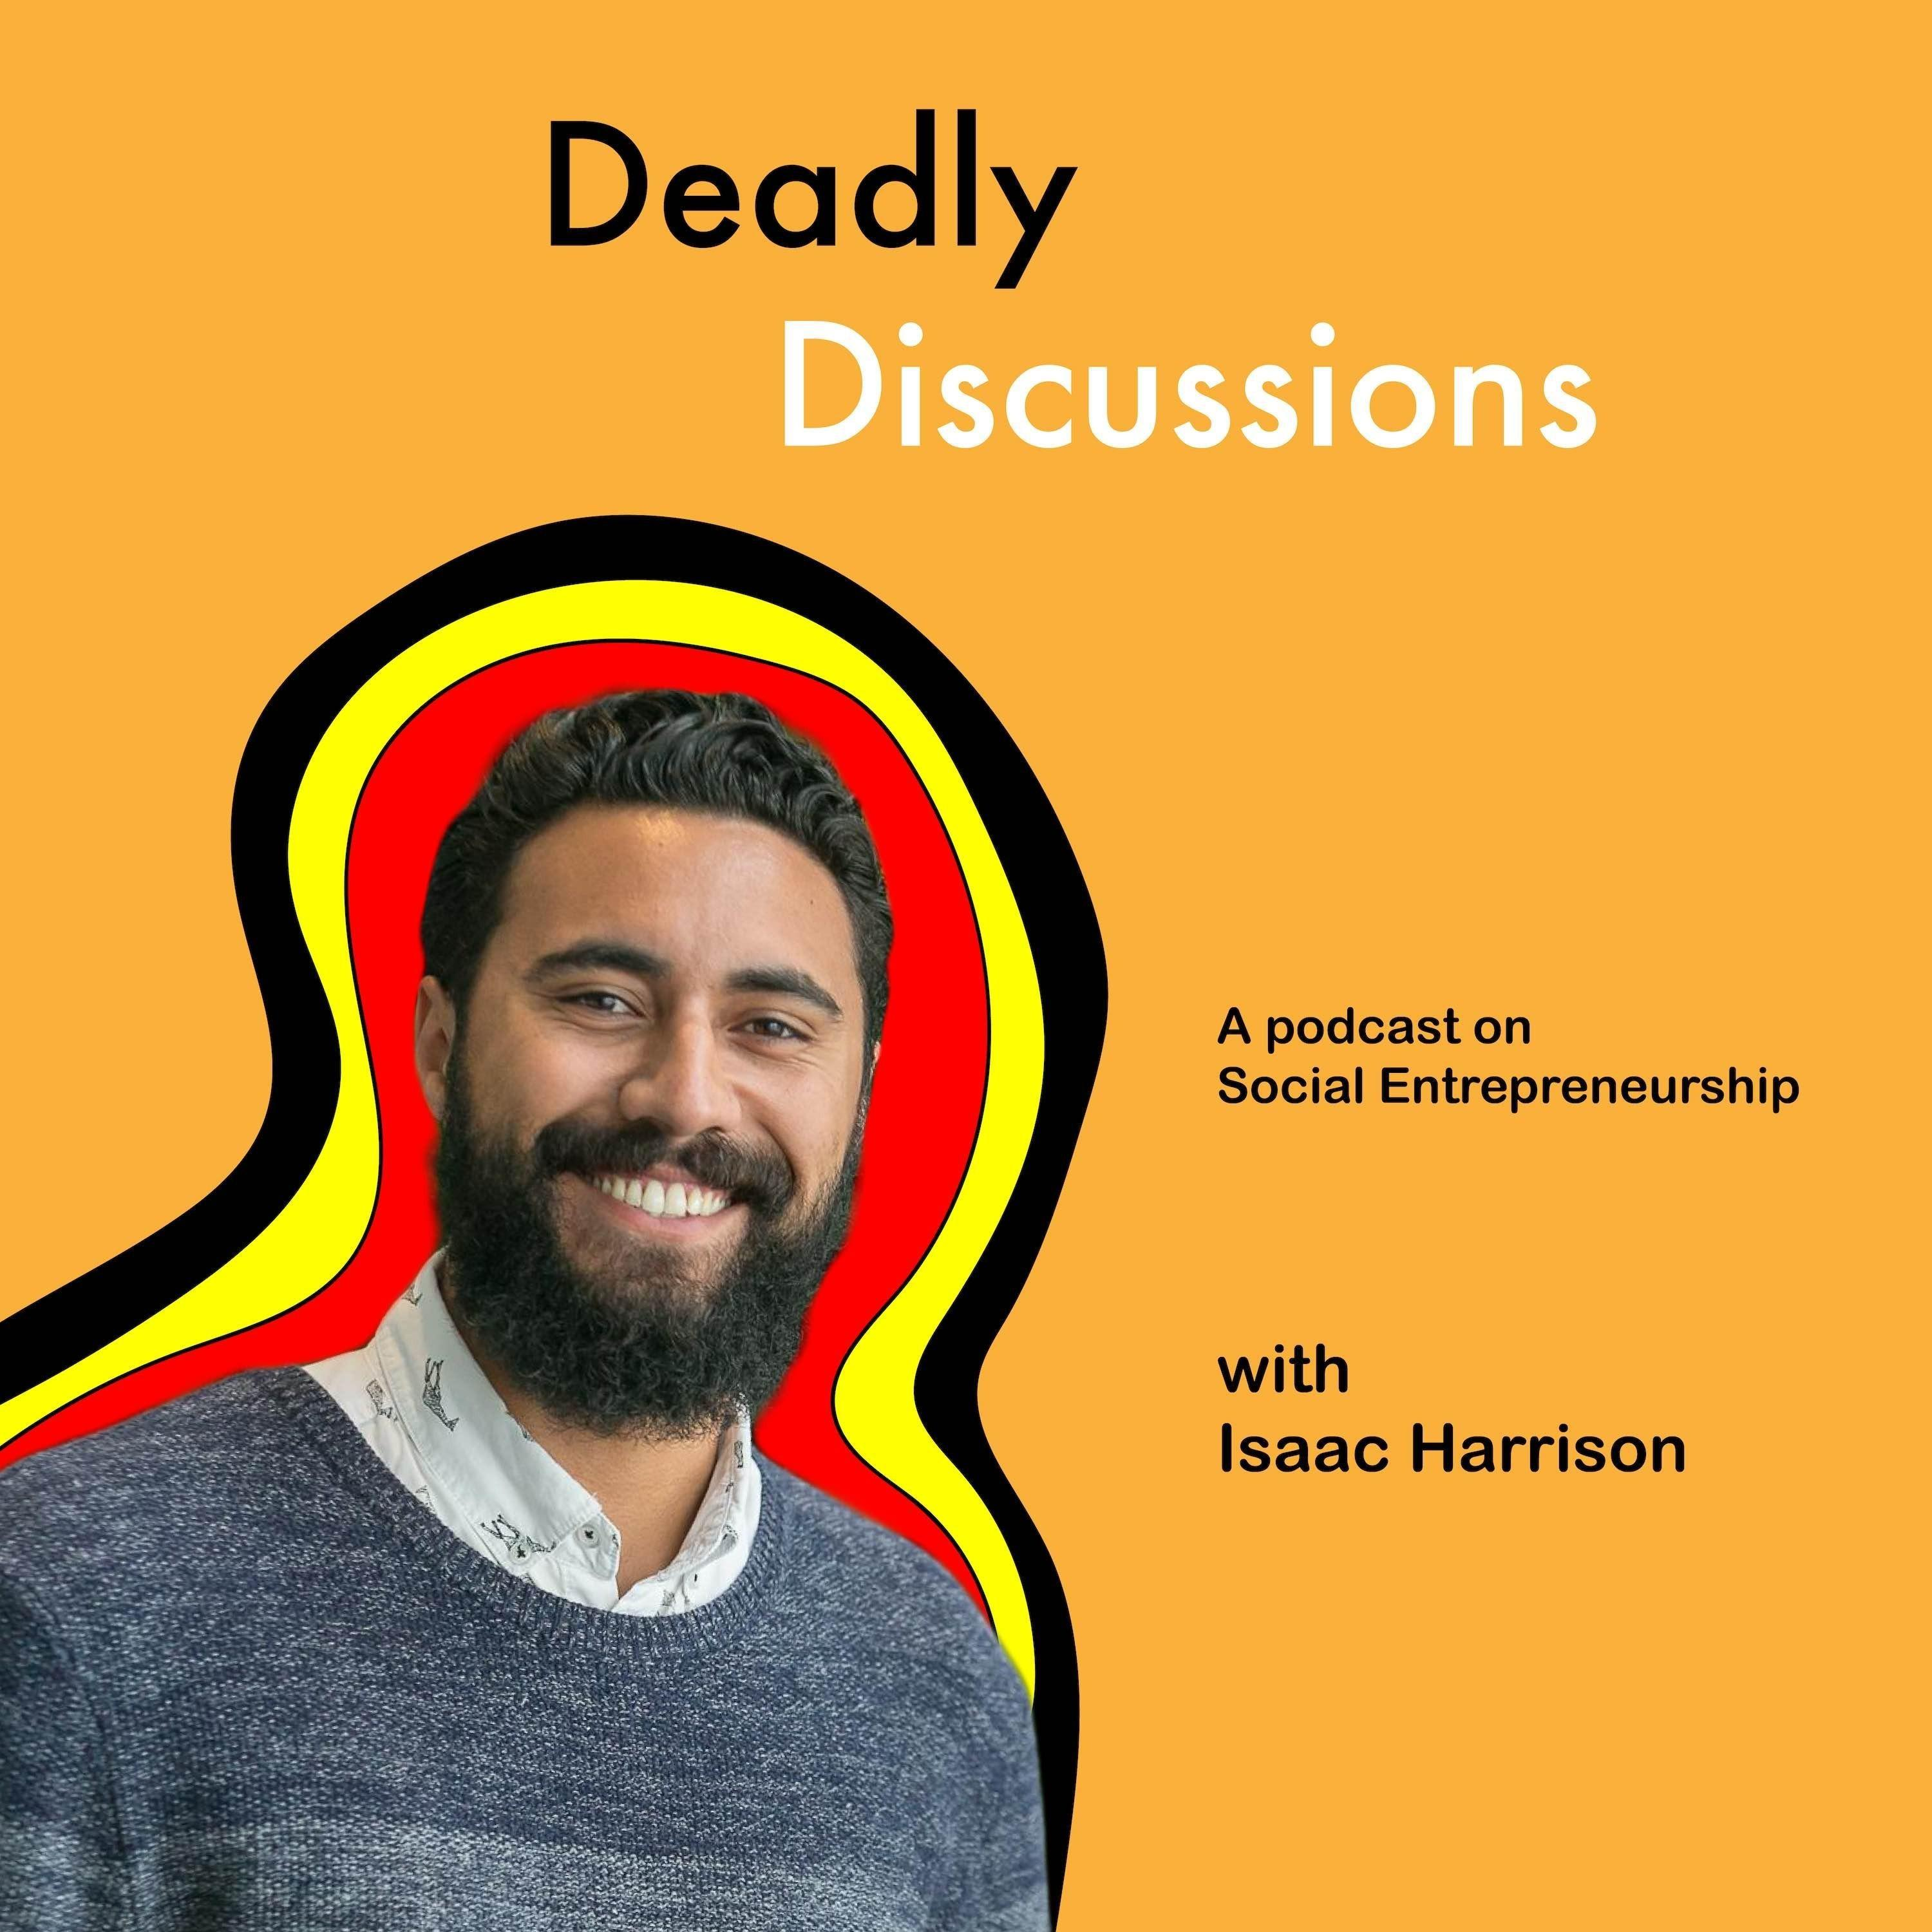 Deadly Discussions Episode 9